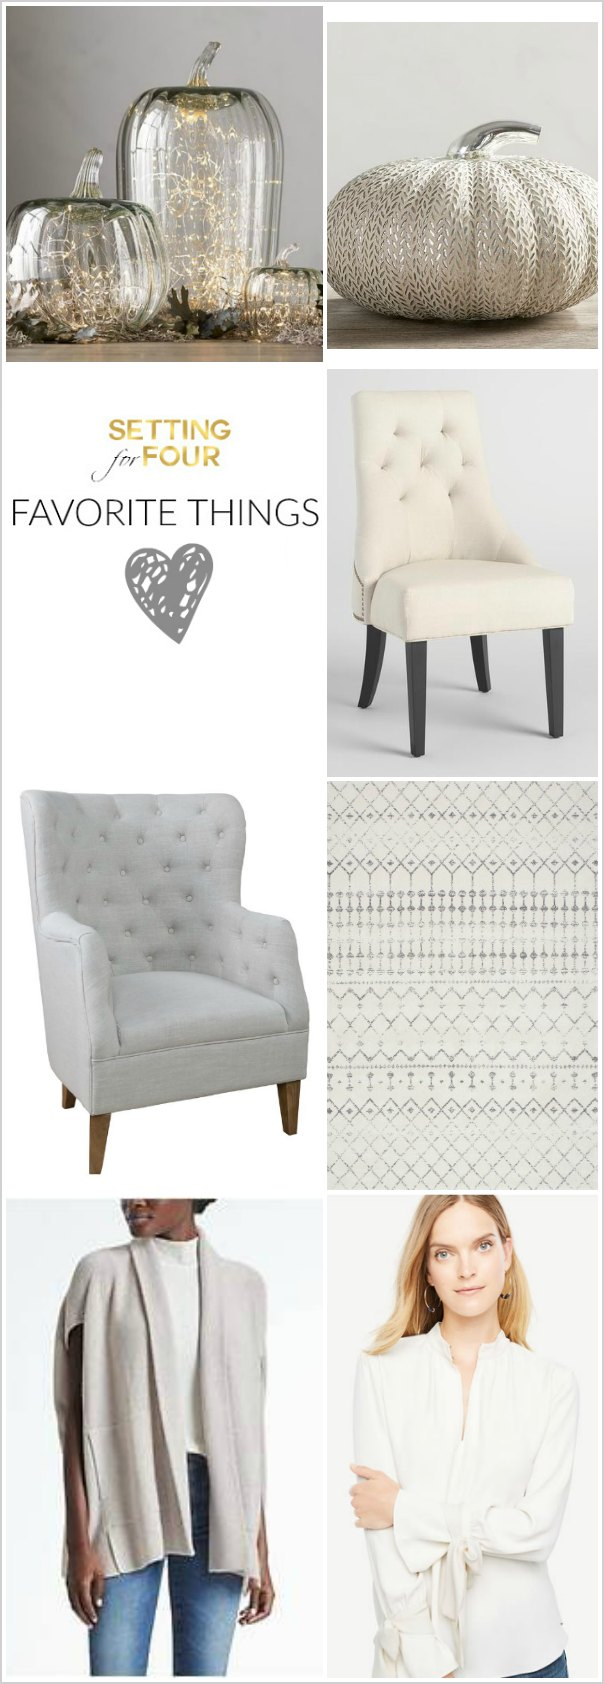 See my Home Decor, Furniture and Fashion Favorites for FALL!! I'm also sharing BIG WEEKEND SALES and SHOPPING COUPON CODES to save money! Add some coziness to your home and closet for autumn. Beautiful Pumpkins, tufted chairs, gray rug, gray cardigan, bow tie sleeve blouse.